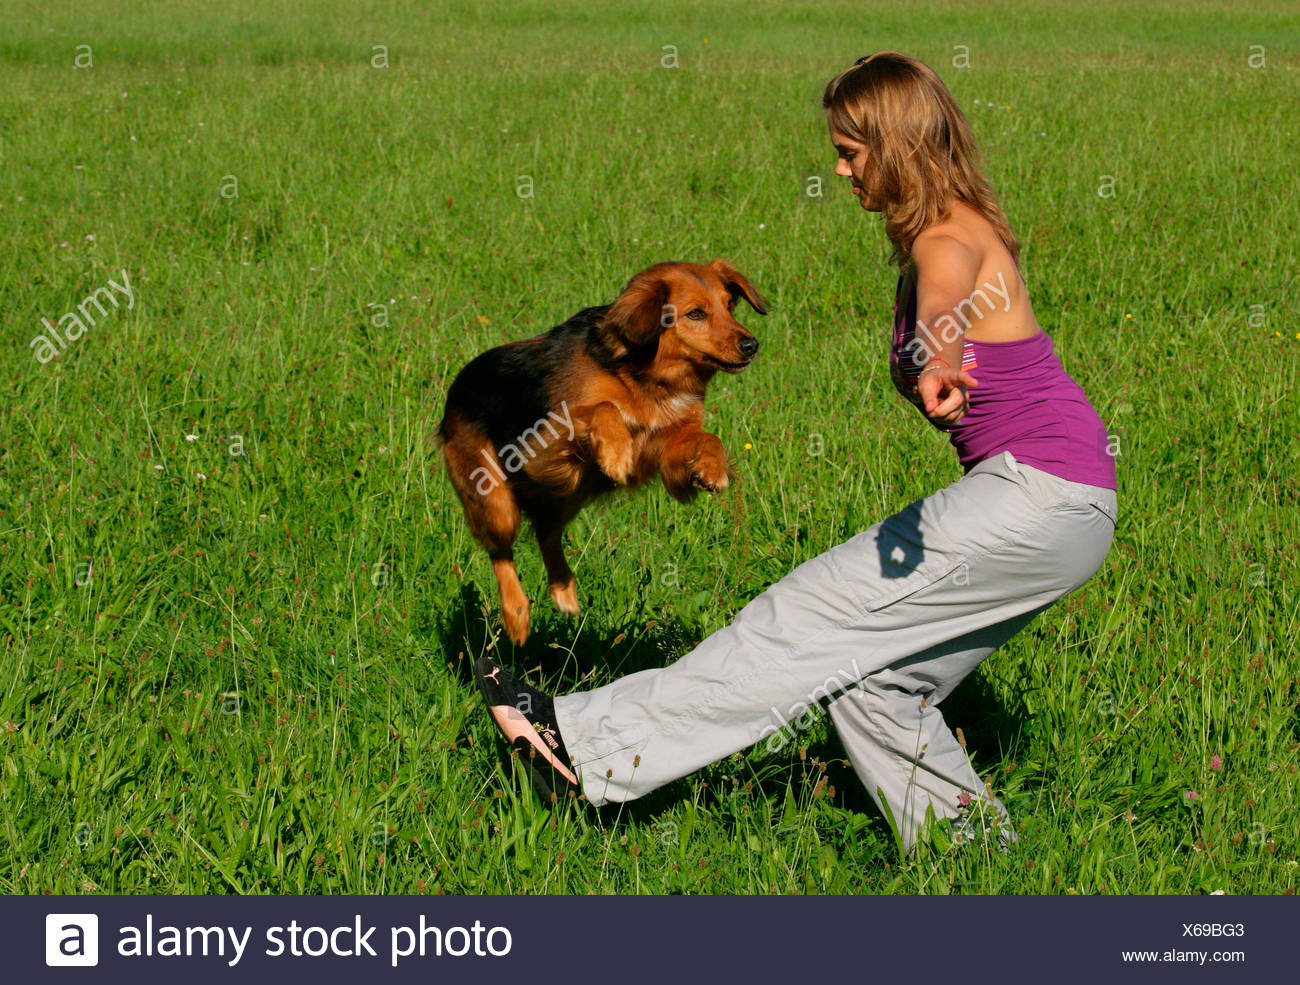 Mixed-breed dog leaping over the leg its owner - Stock Image